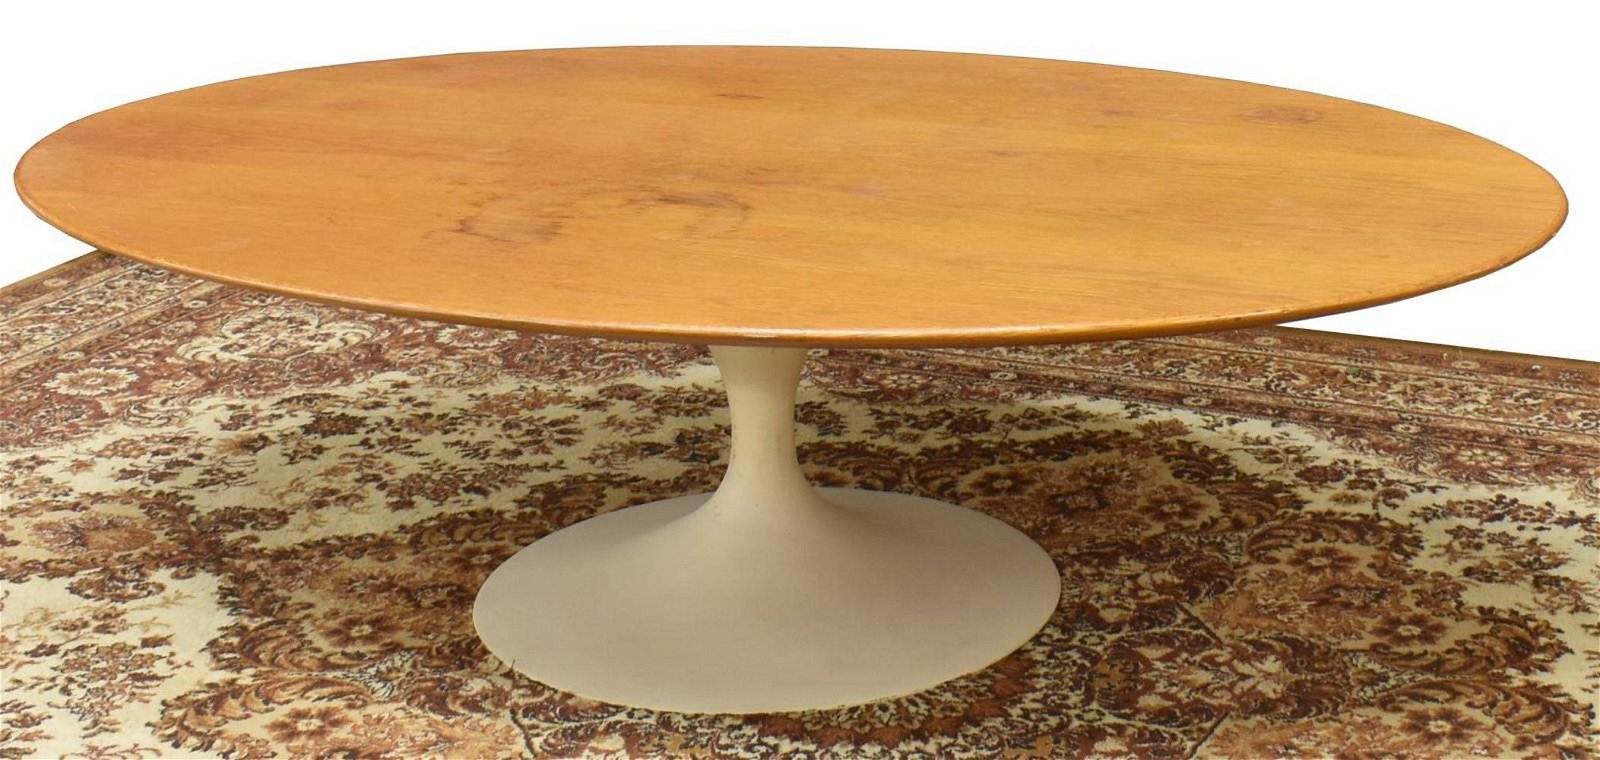 EERO SAARINEN FOR KNOLL INT. TULIP COFFEE TABLE